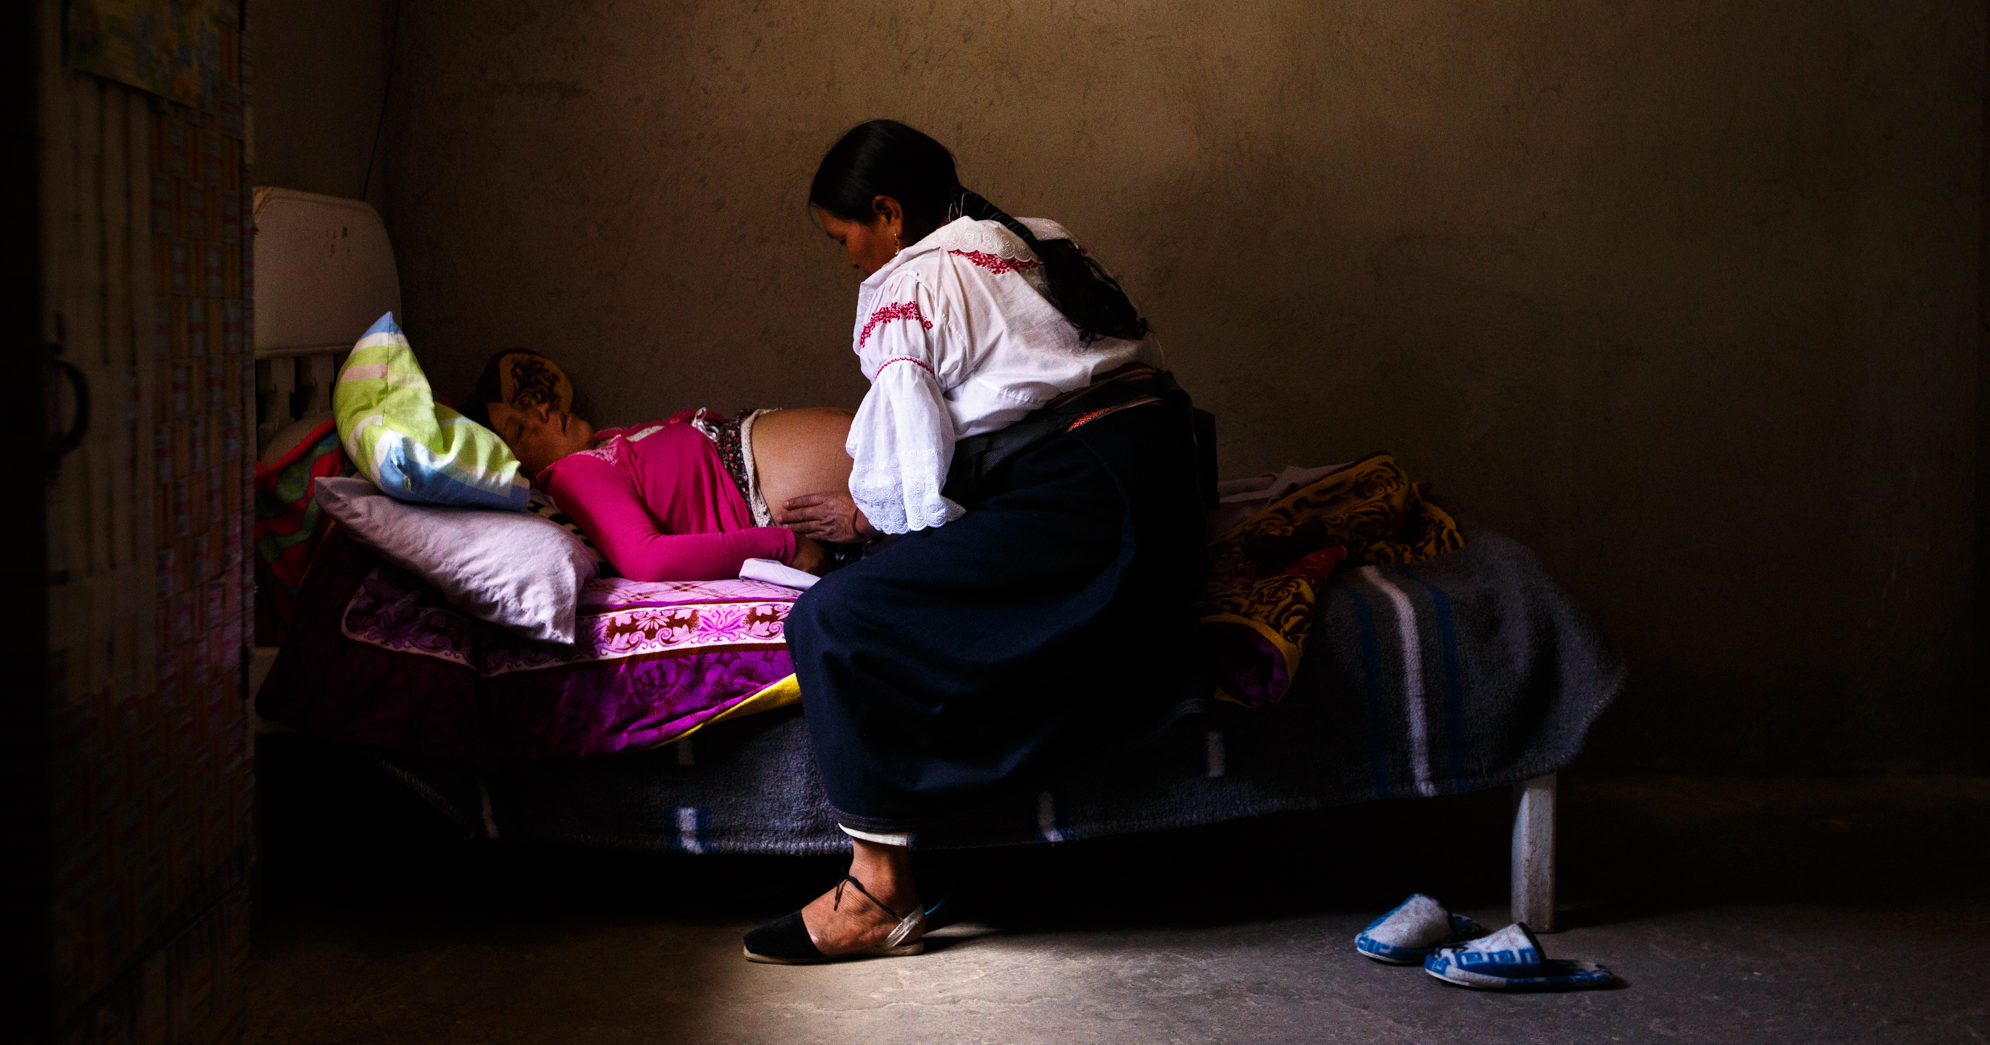 The tender care of a midwife makes the difference for moms